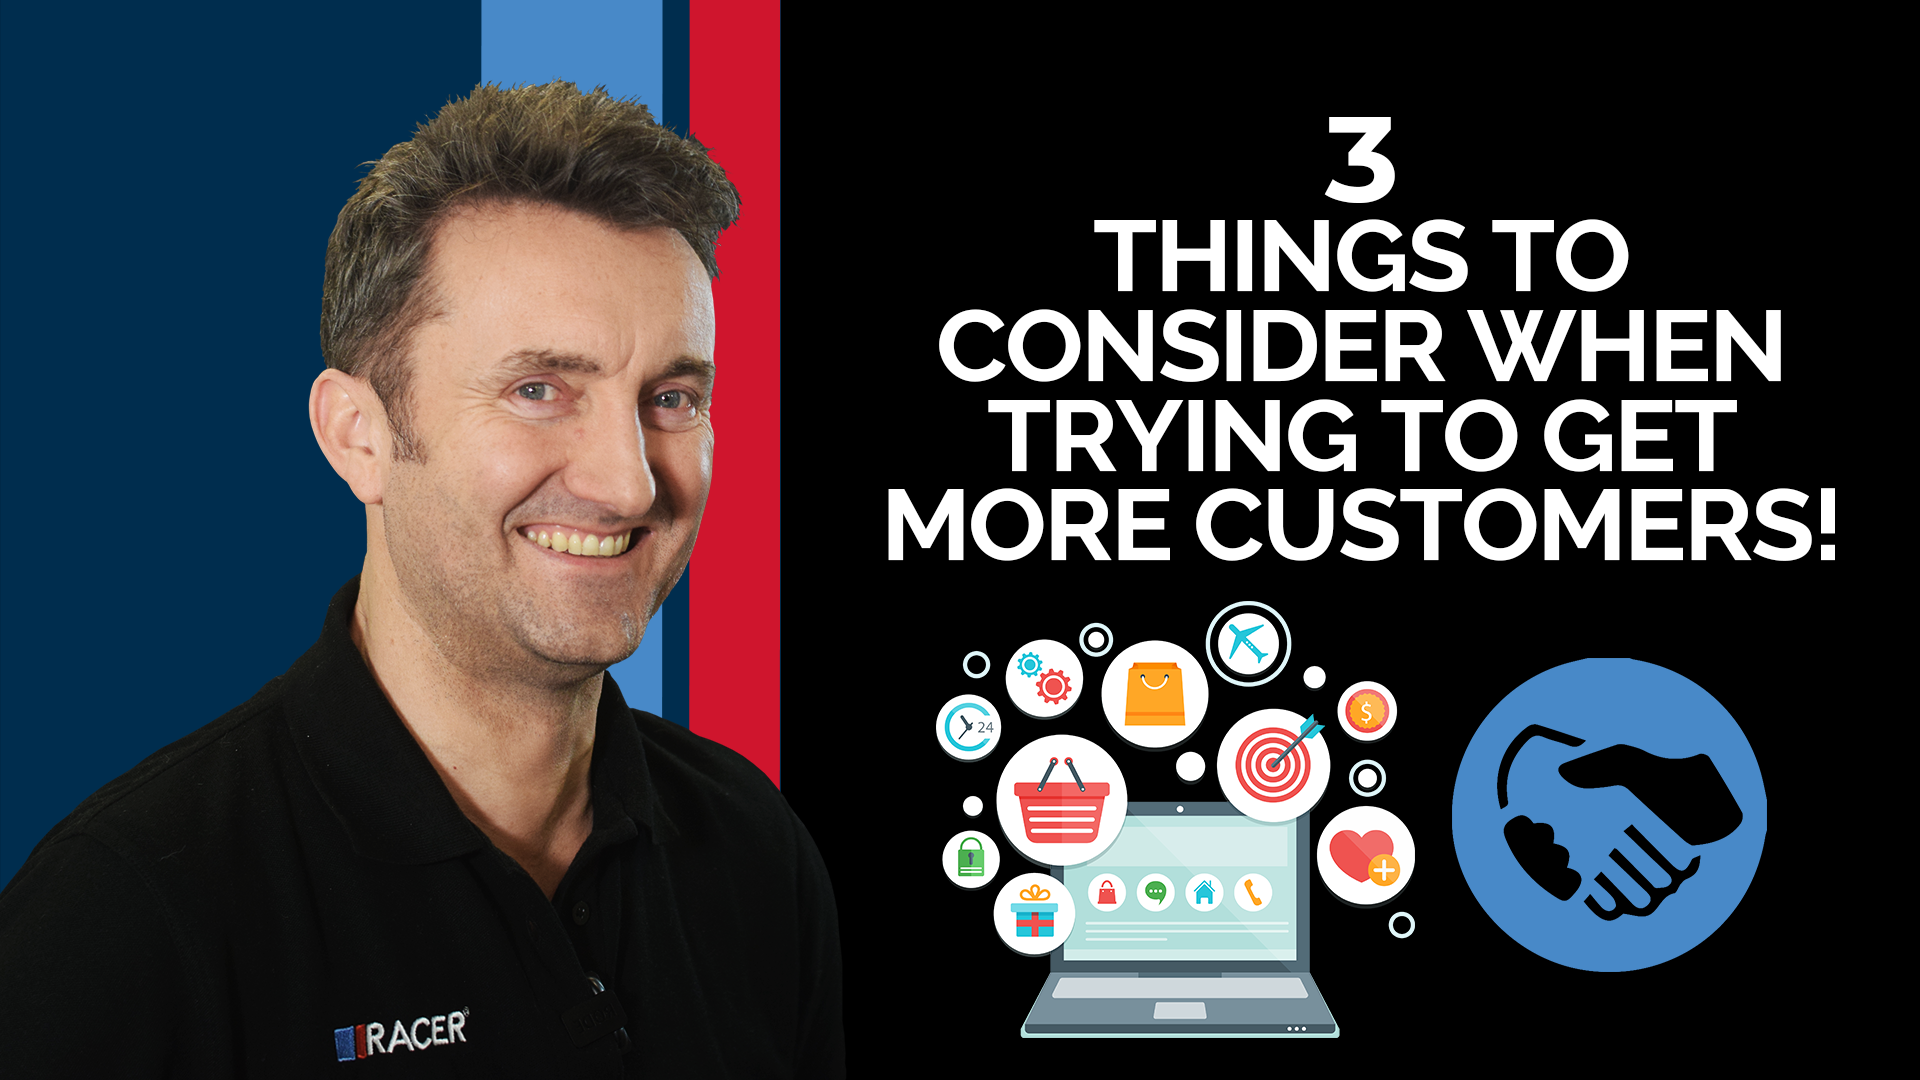 3 Things to Consider When Trying to get More Customers for your Business!